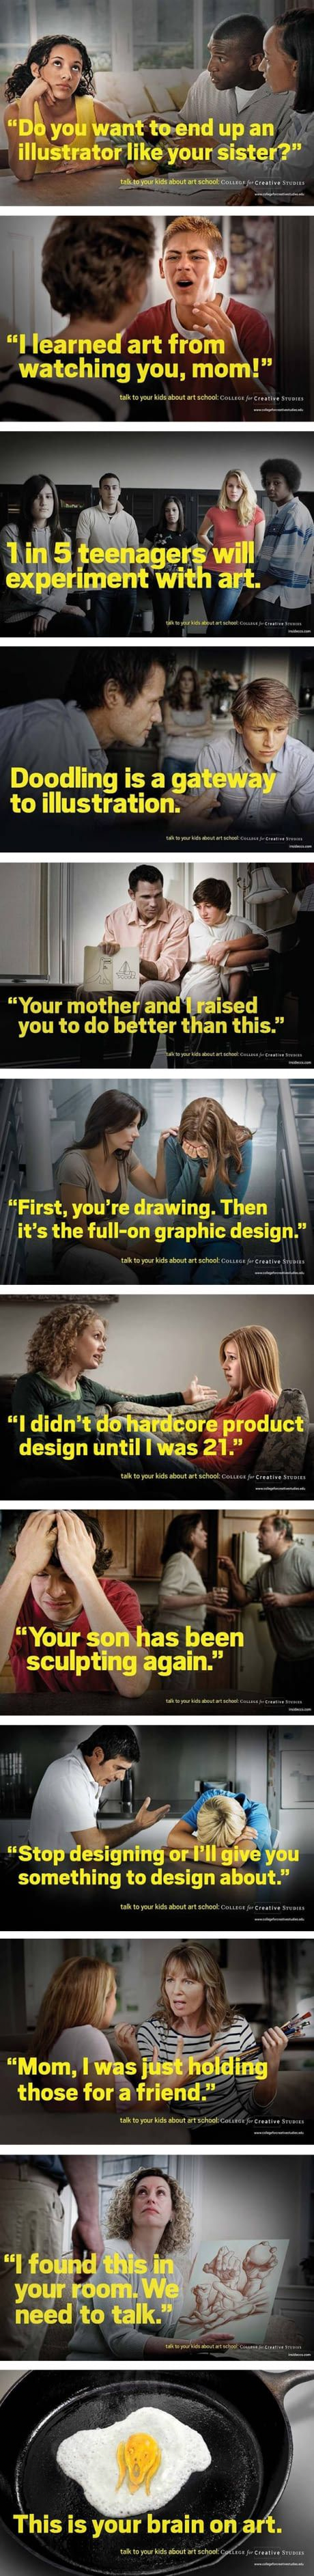 """""""First you're drawing then its the full-on graphic design"""" - you have been warned folks."""